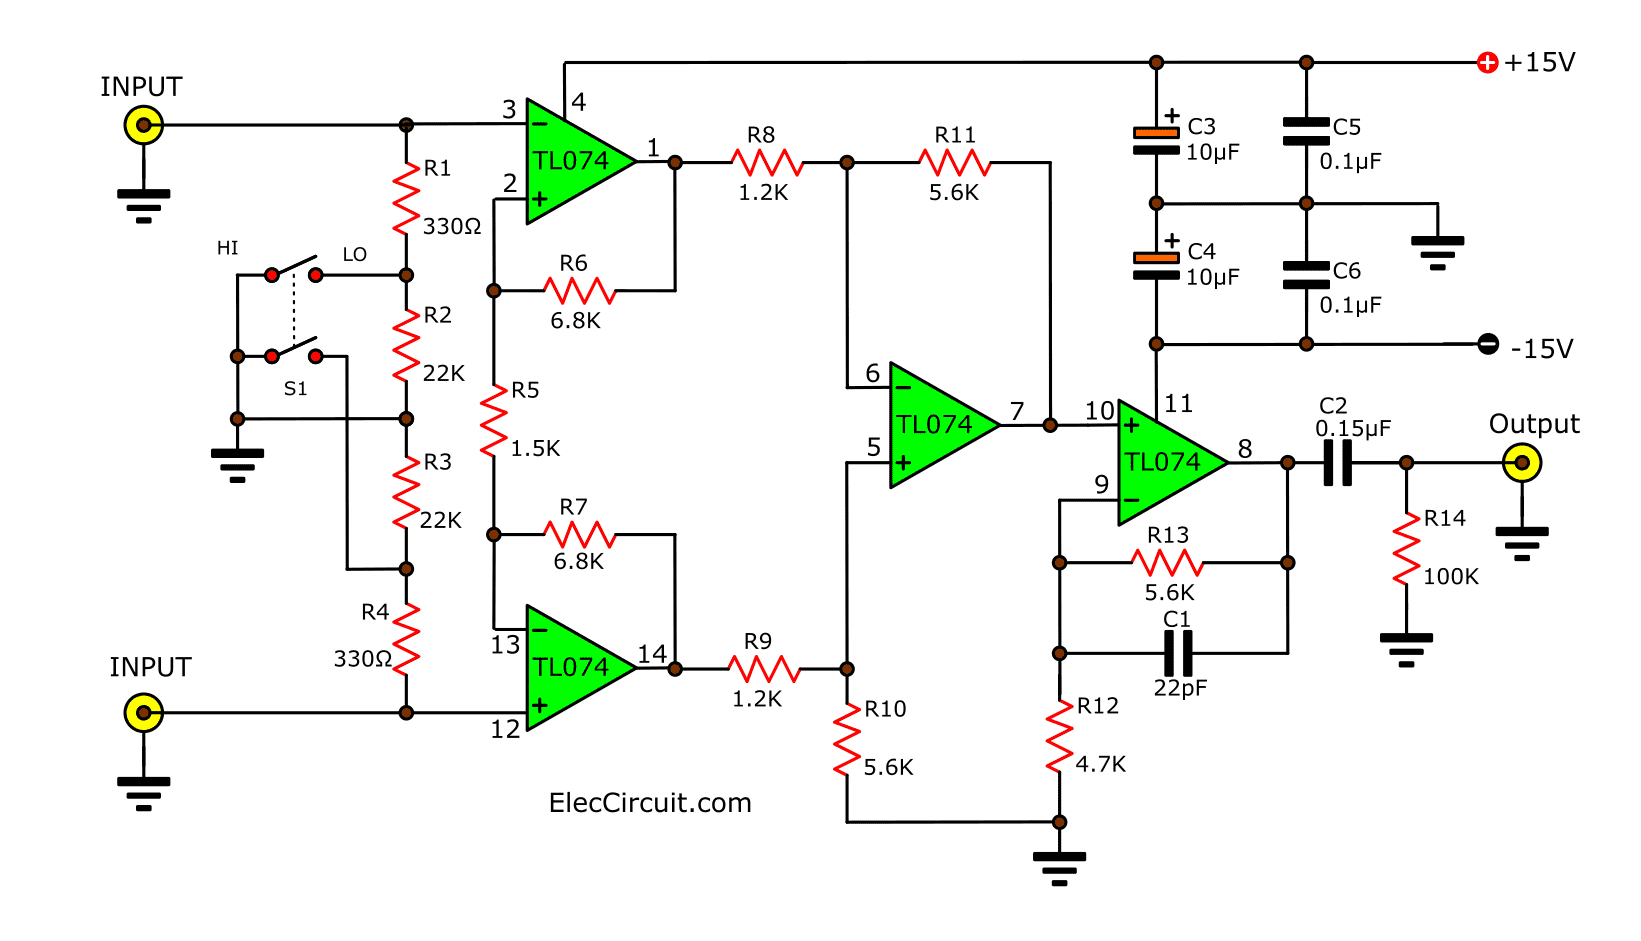 3 Low noise microphone preamplifier circuit using NE5532 LF356